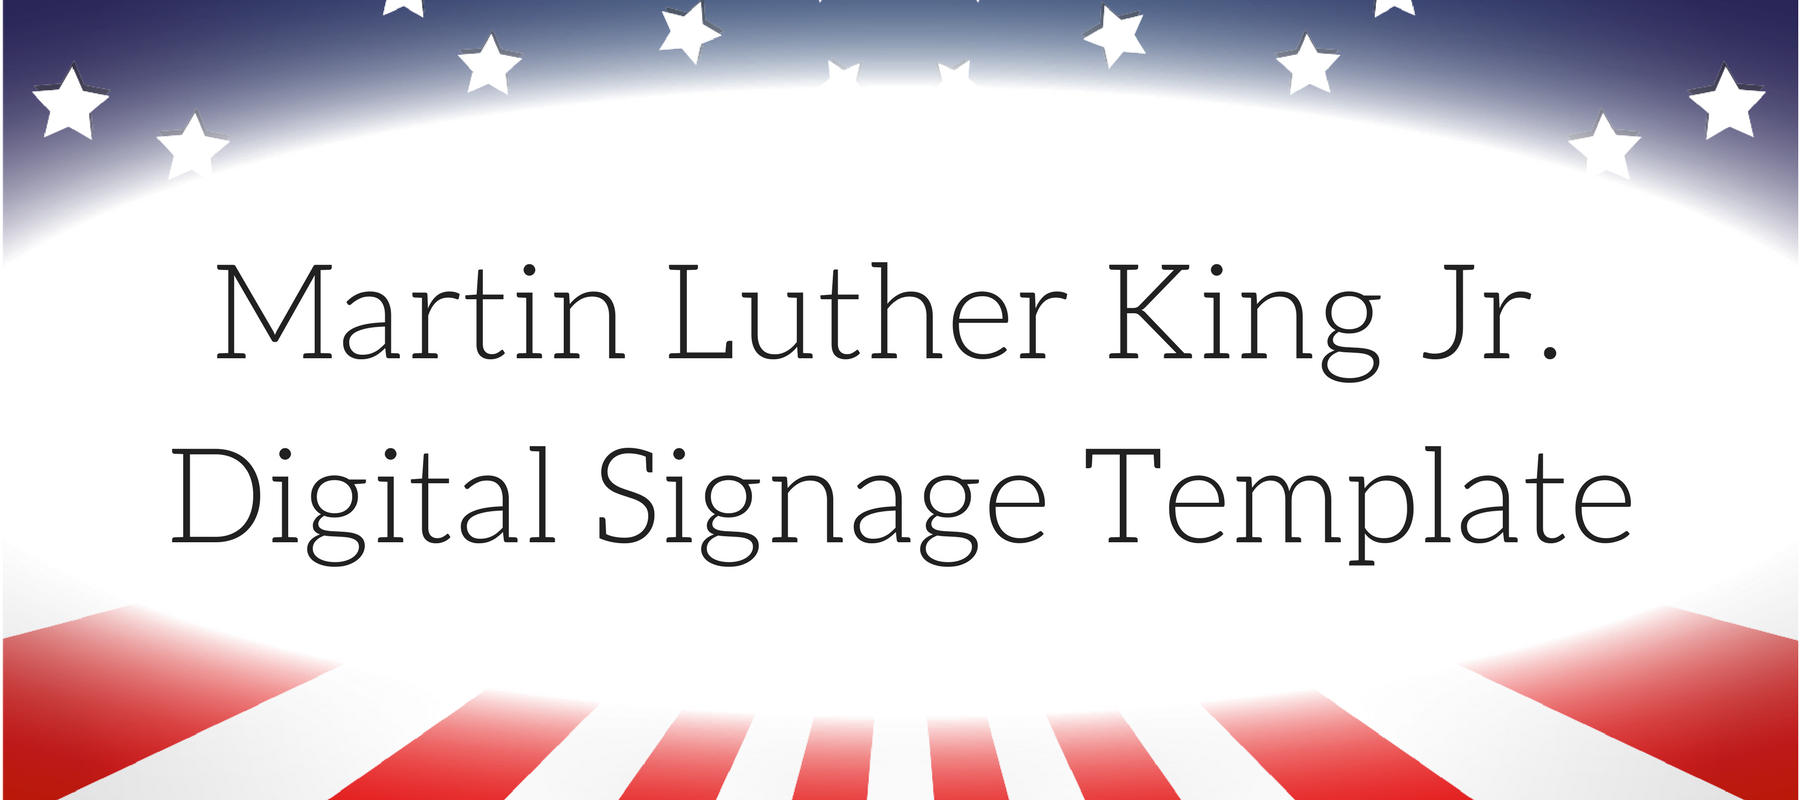 Martin Luther King Jr. Digital Signage Template